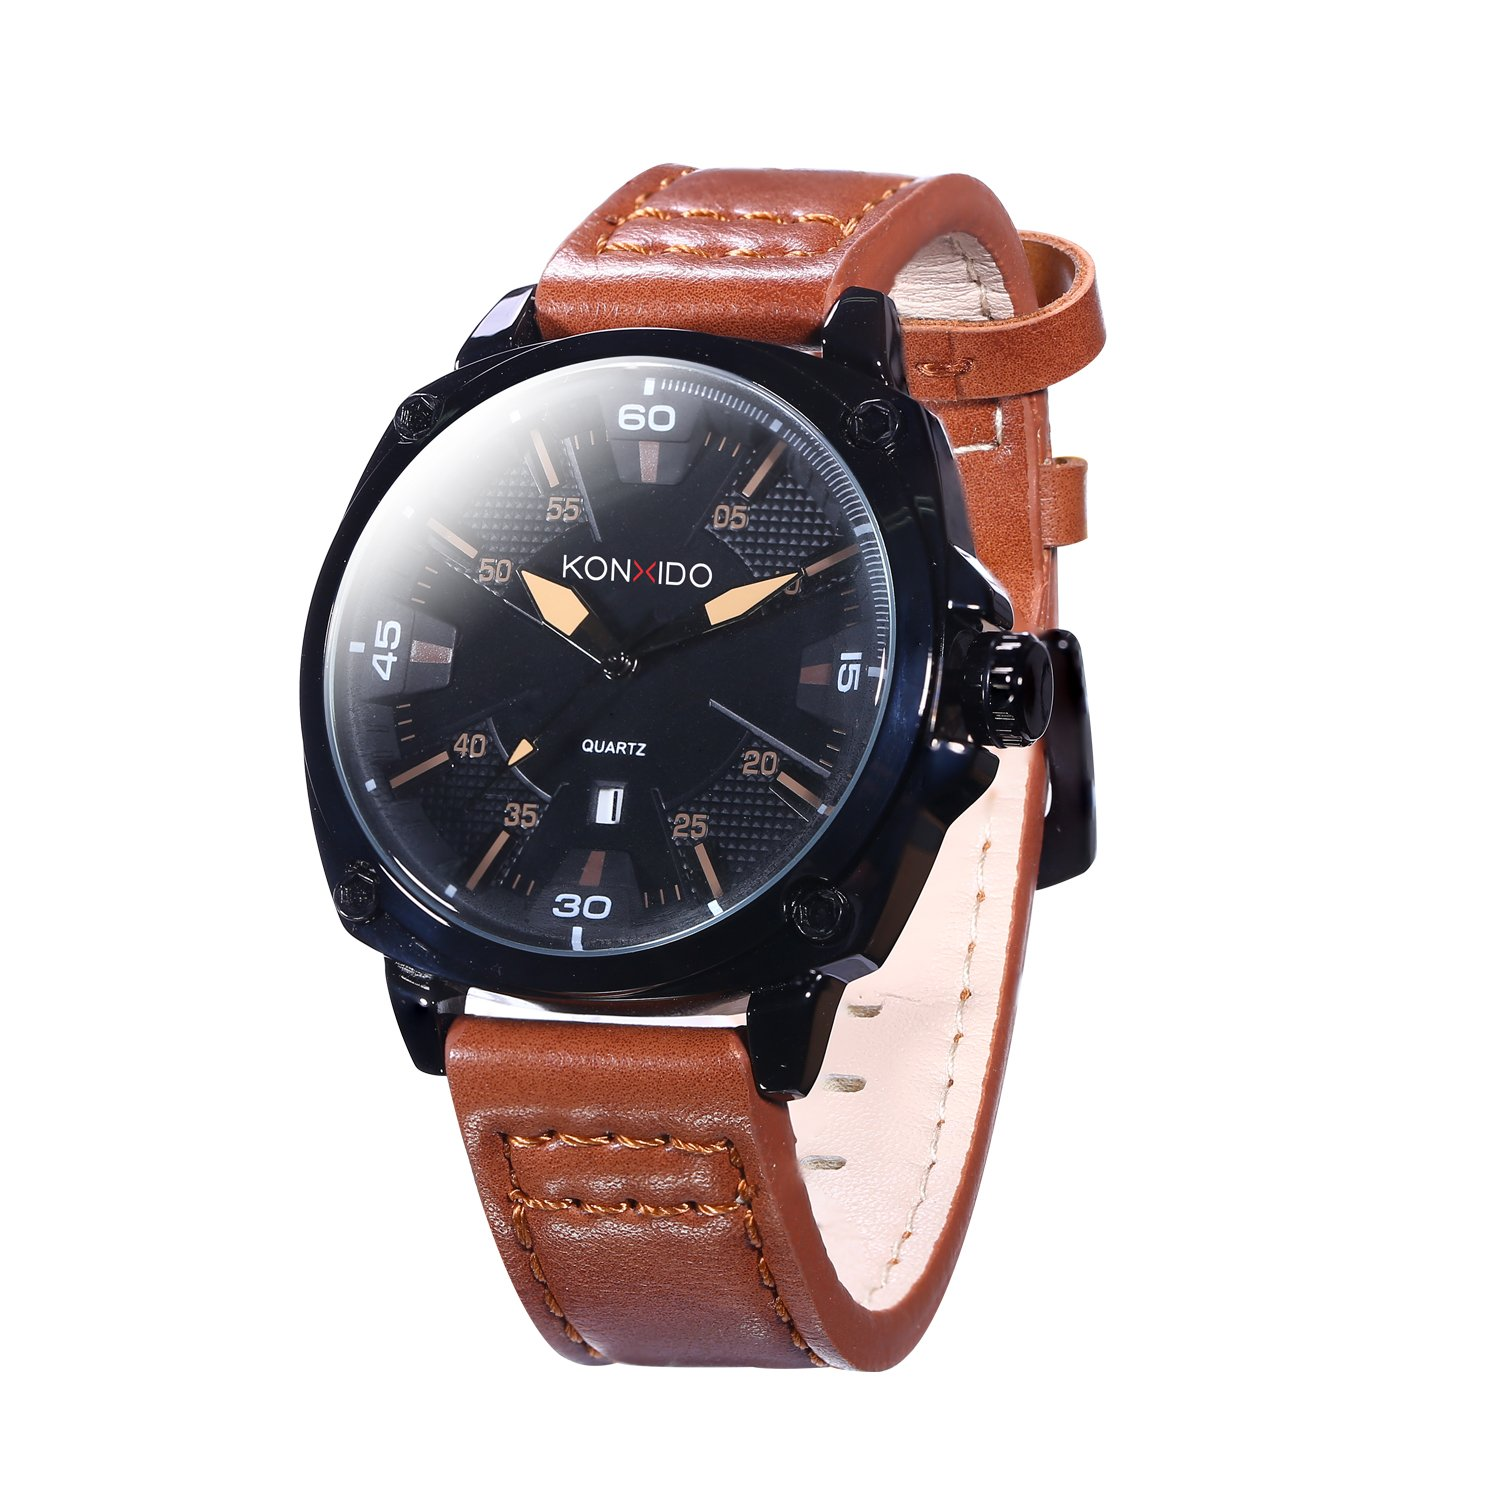 LONGBO KOSSFER Men's Quartz Watch Roman Numeral Business Casual Fashion Analog Wrist watch Classic Calendar Date Window Men's Stainless Steel Watch With Light genuine Leather Band Black Brown